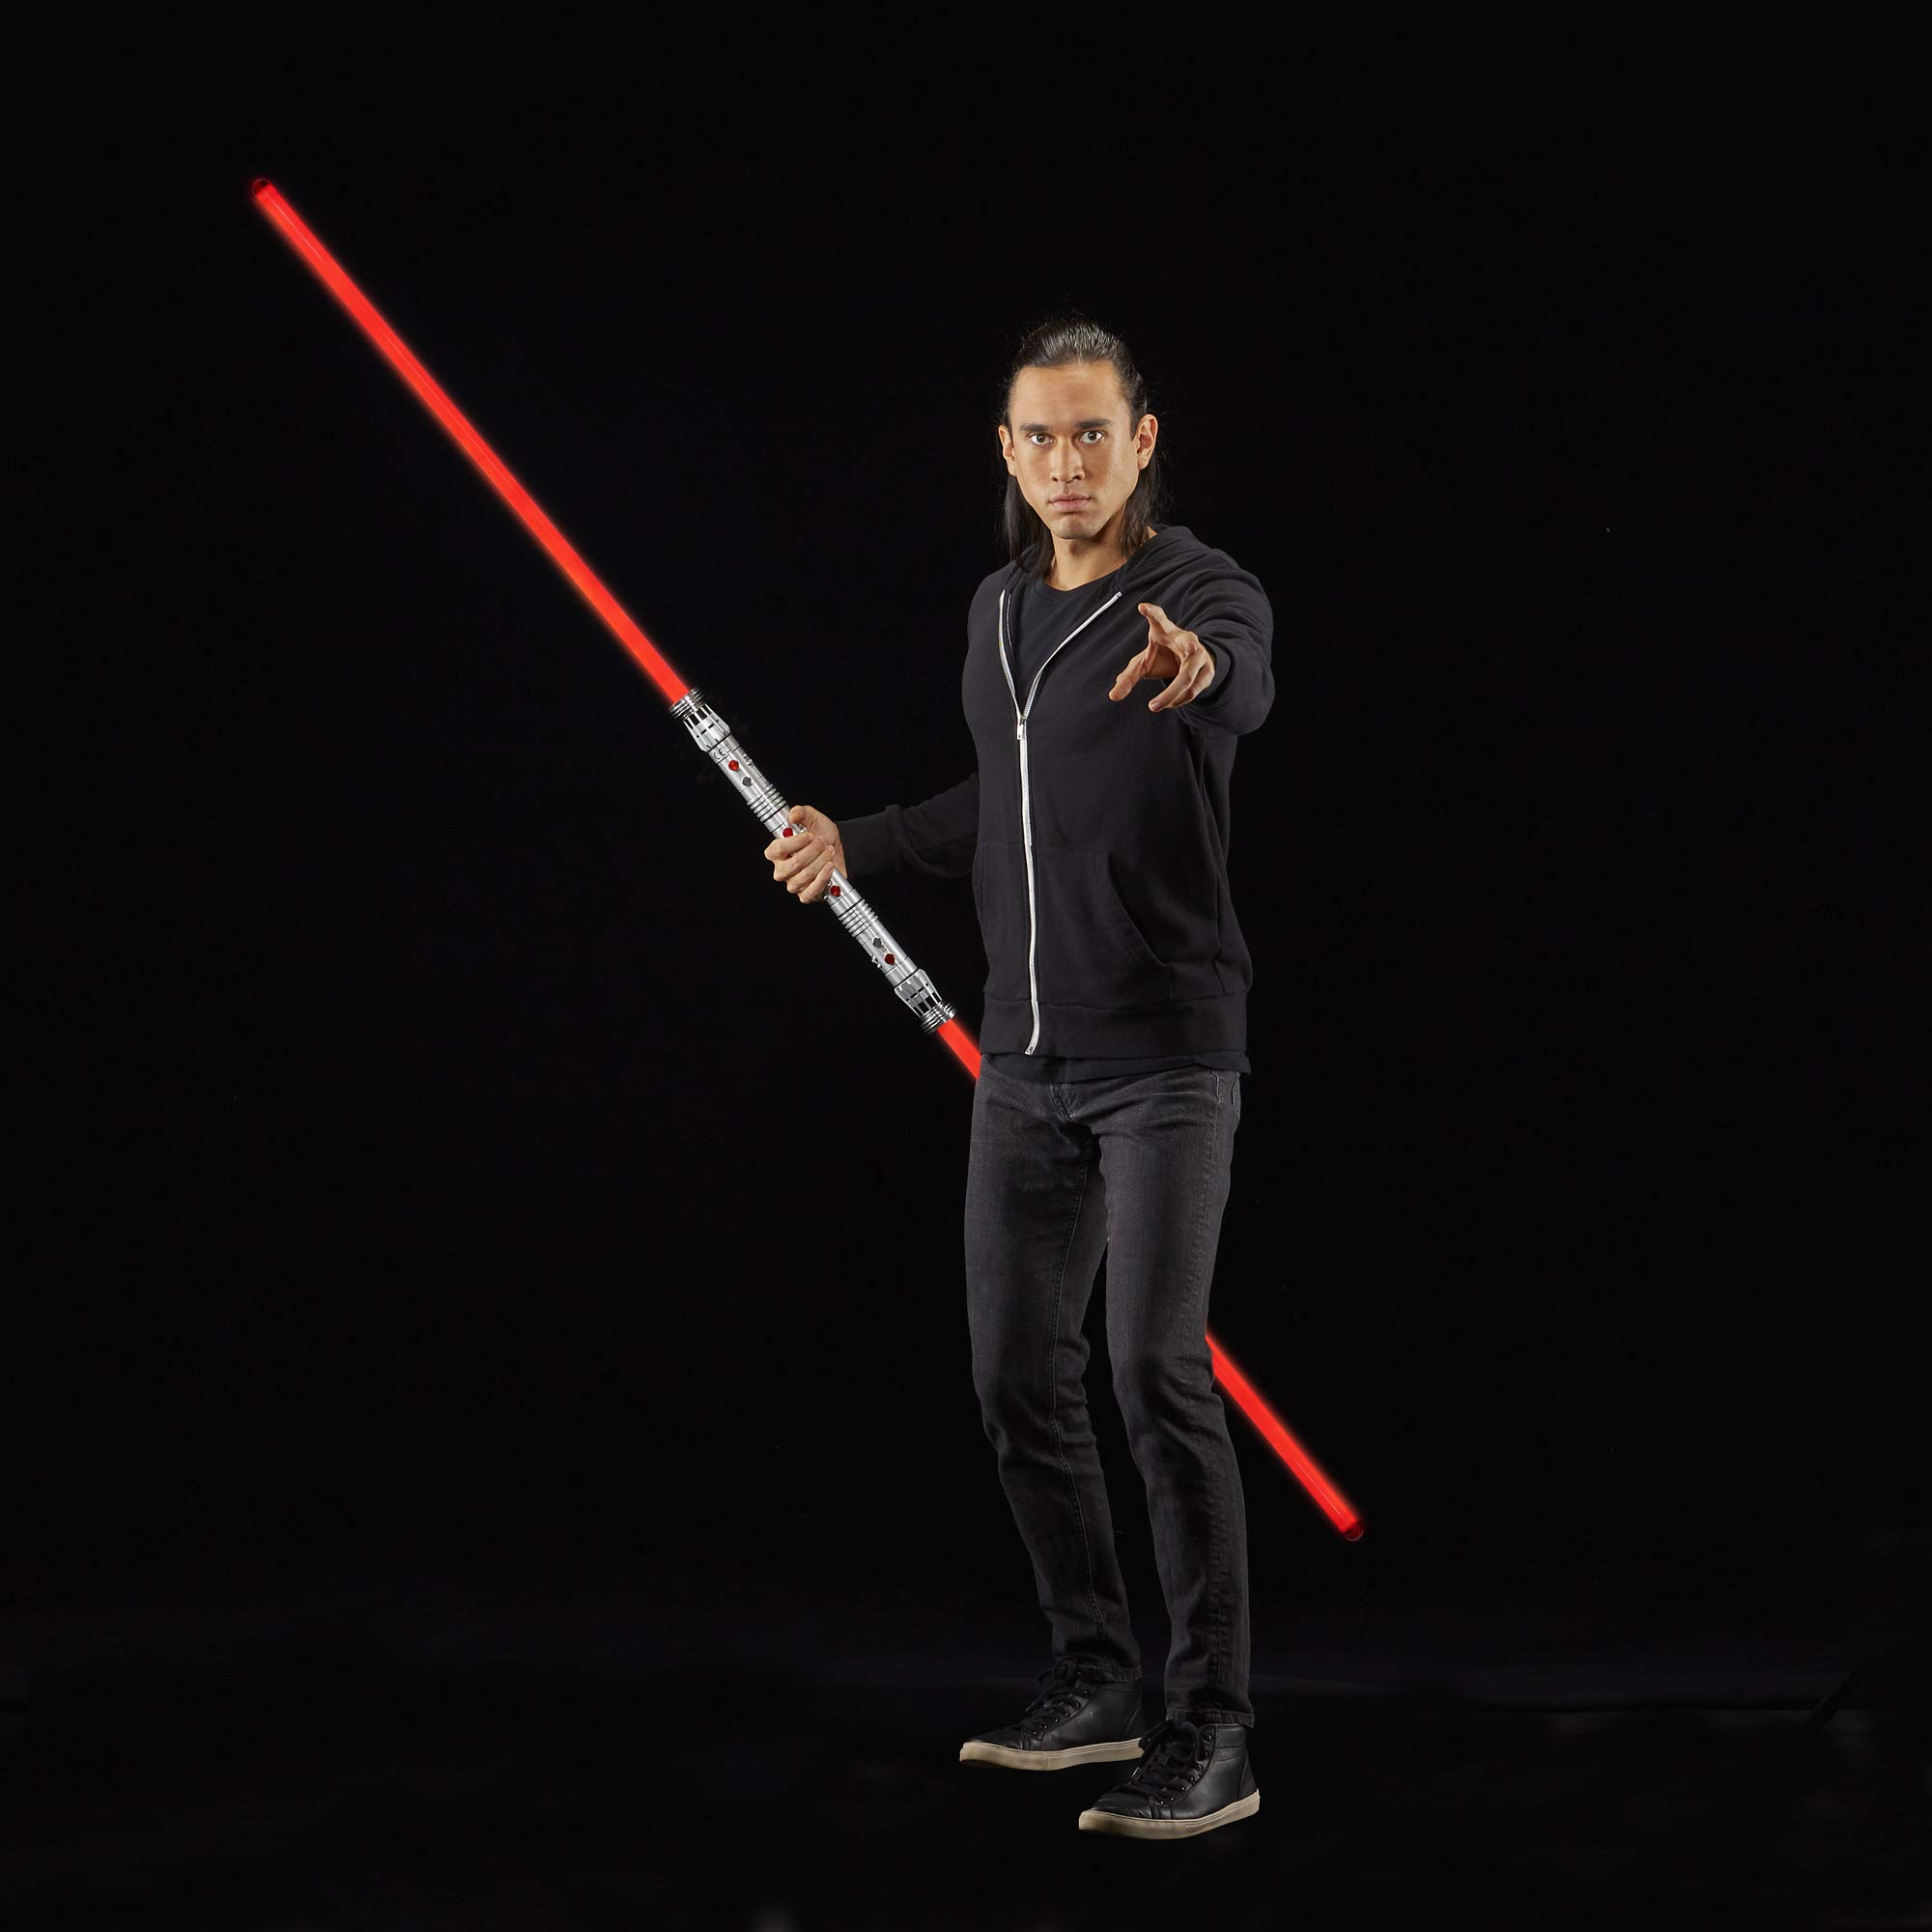 Star Wars The Black Series Darth Maul Ep1 Force FX Lightsaber Toy by Star Wars (Image #7)